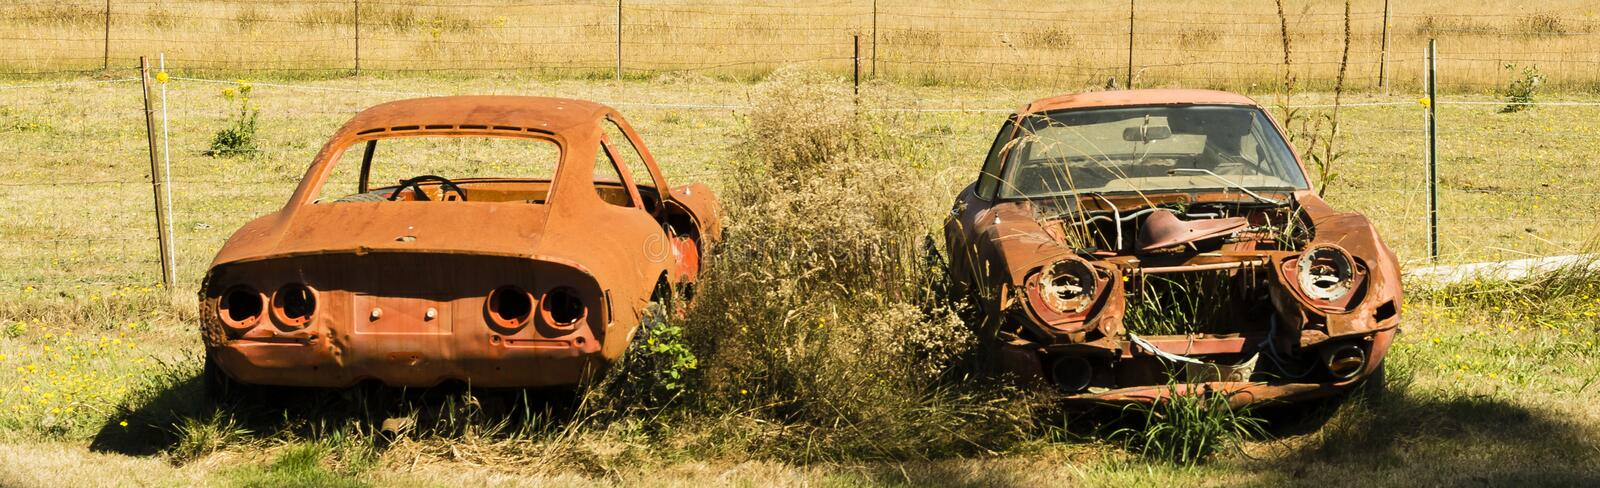 Rusting old cars stock photos